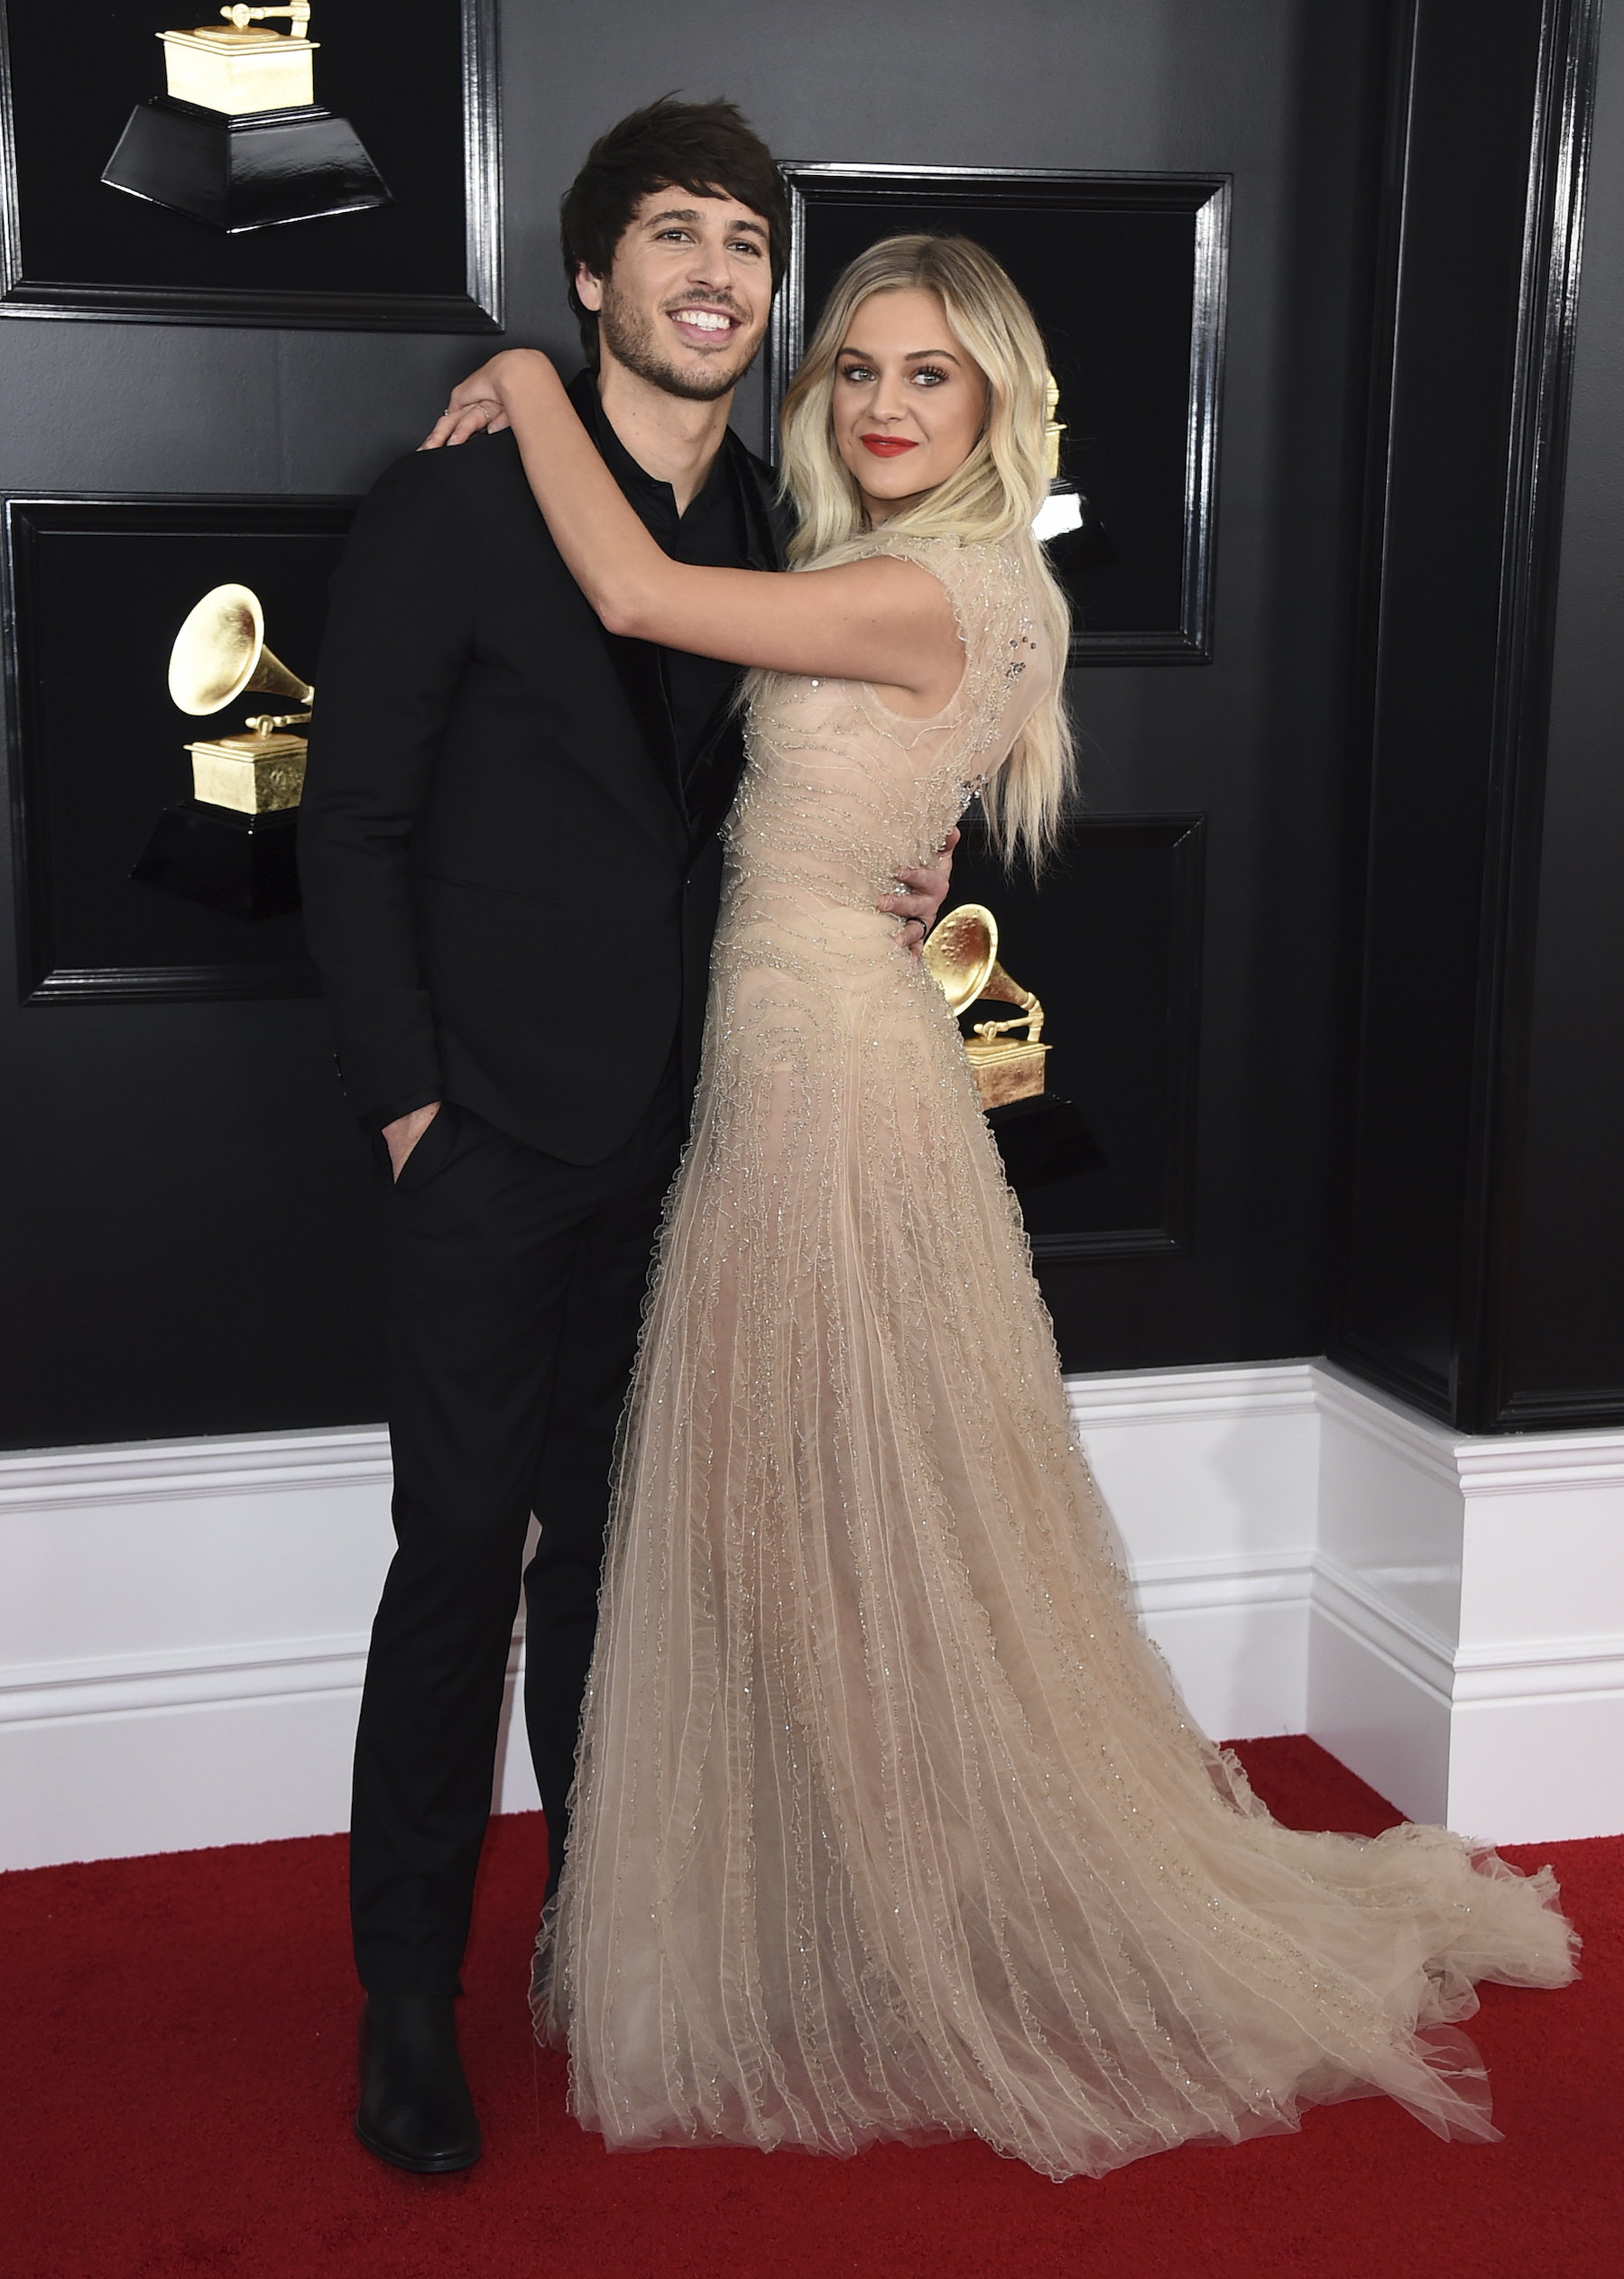 <div class='meta'><div class='origin-logo' data-origin='AP'></div><span class='caption-text' data-credit='Jordan Strauss/Invision/AP'>Morgan Evans, left, and Kelsea Ballerini arrive at the 61st annual Grammy Awards at the Staples Center on Sunday, Feb. 10, 2019, in Los Angeles.</span></div>